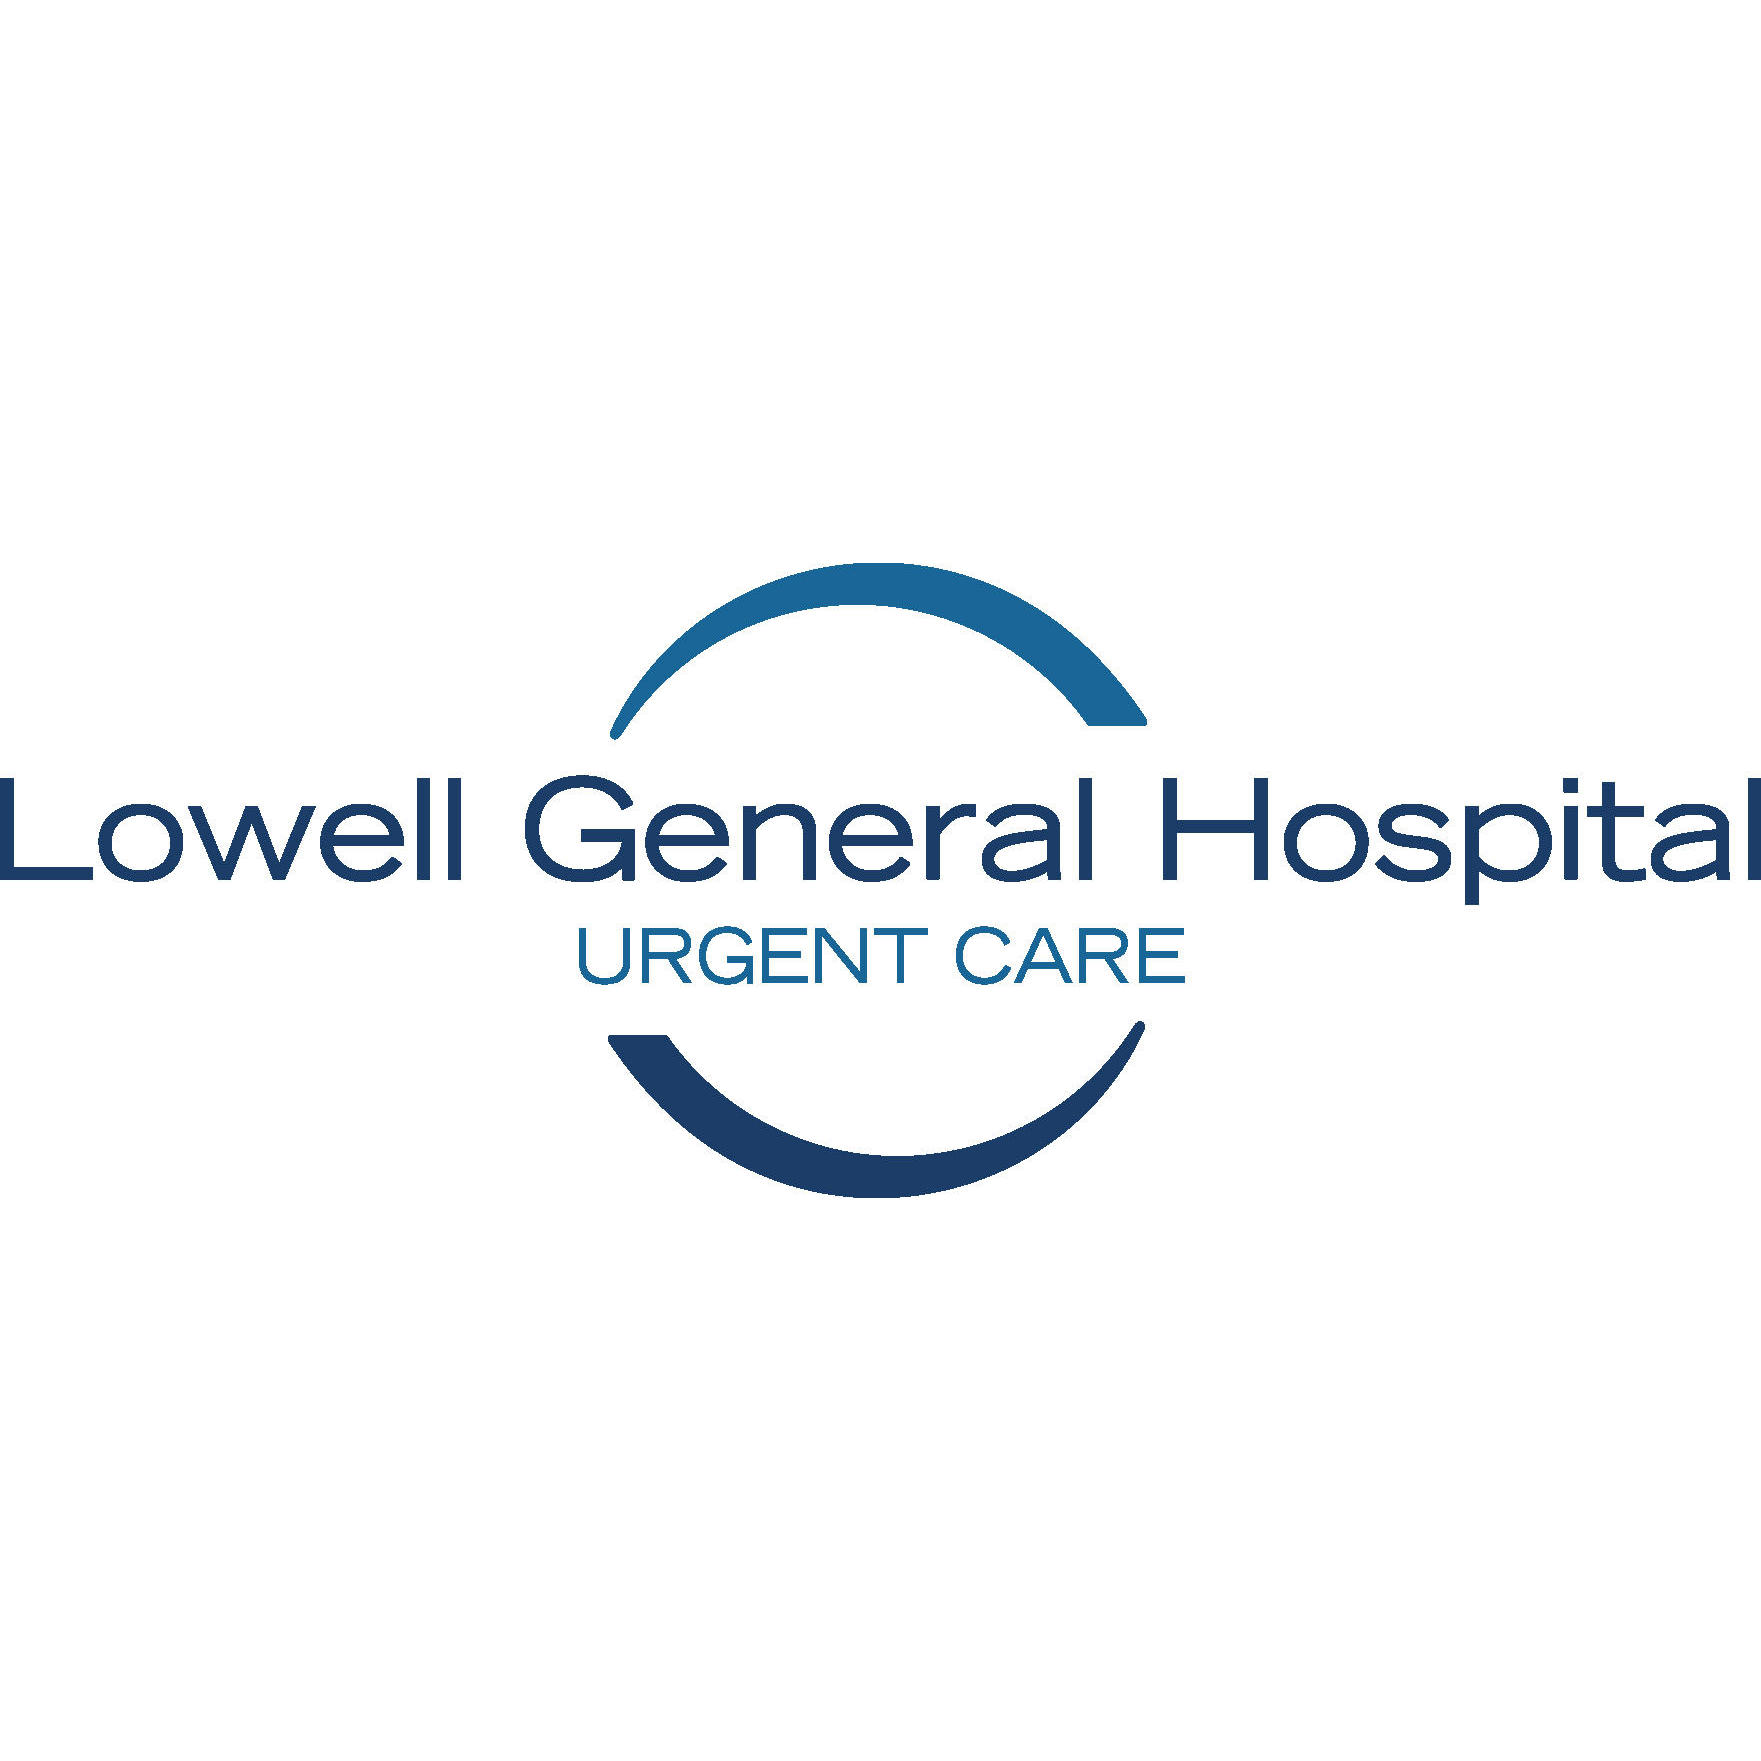 Lowell General Hospital Urgent Care - Closed